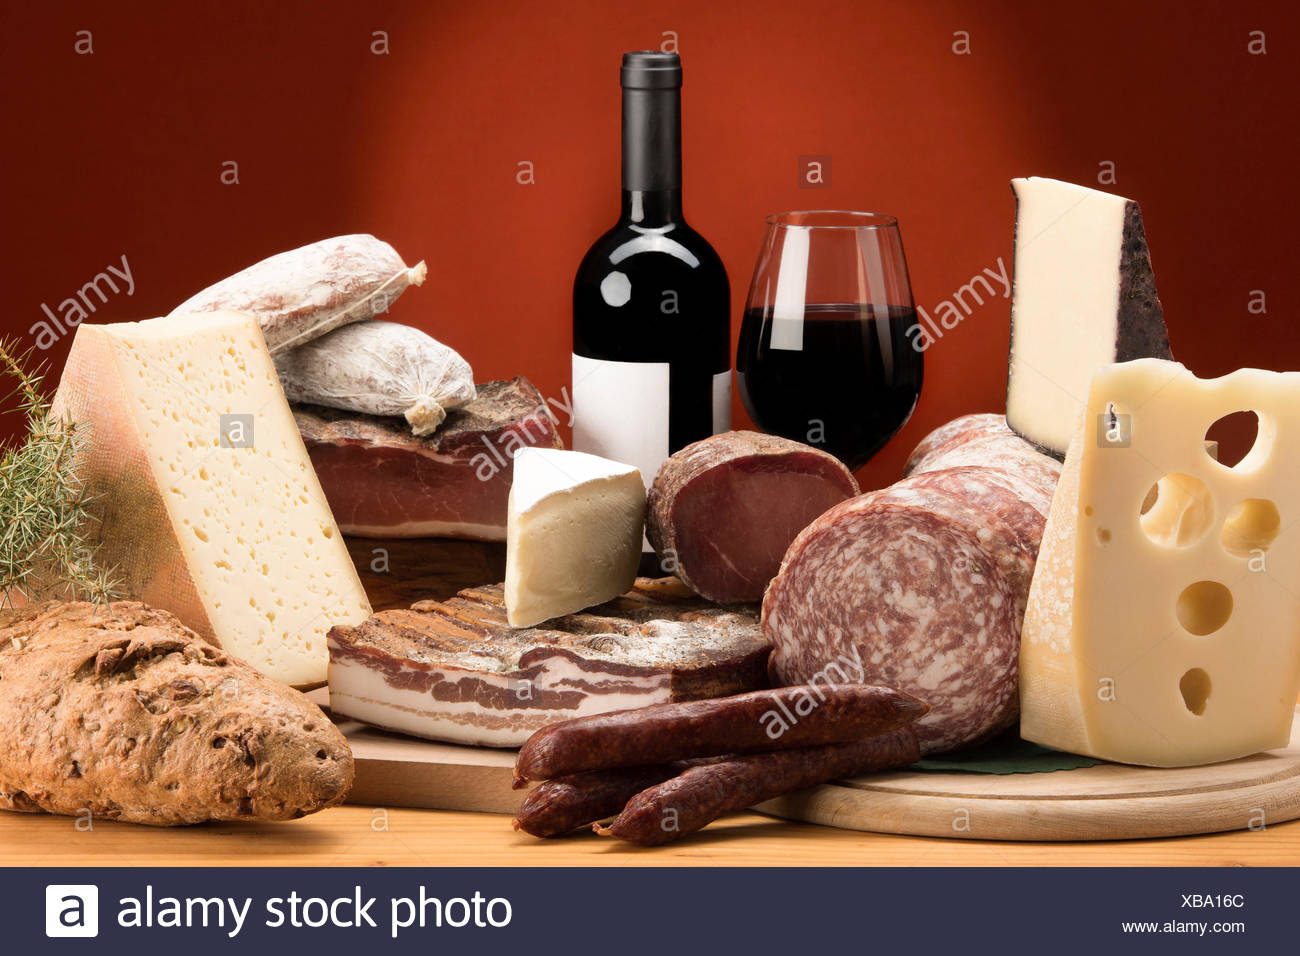 Still life, mixed salami, Mixed cheeses, typical products, red wine, Salami and cheeses, Trentino, AltoAdige, Dolomites, food, Stock Photo